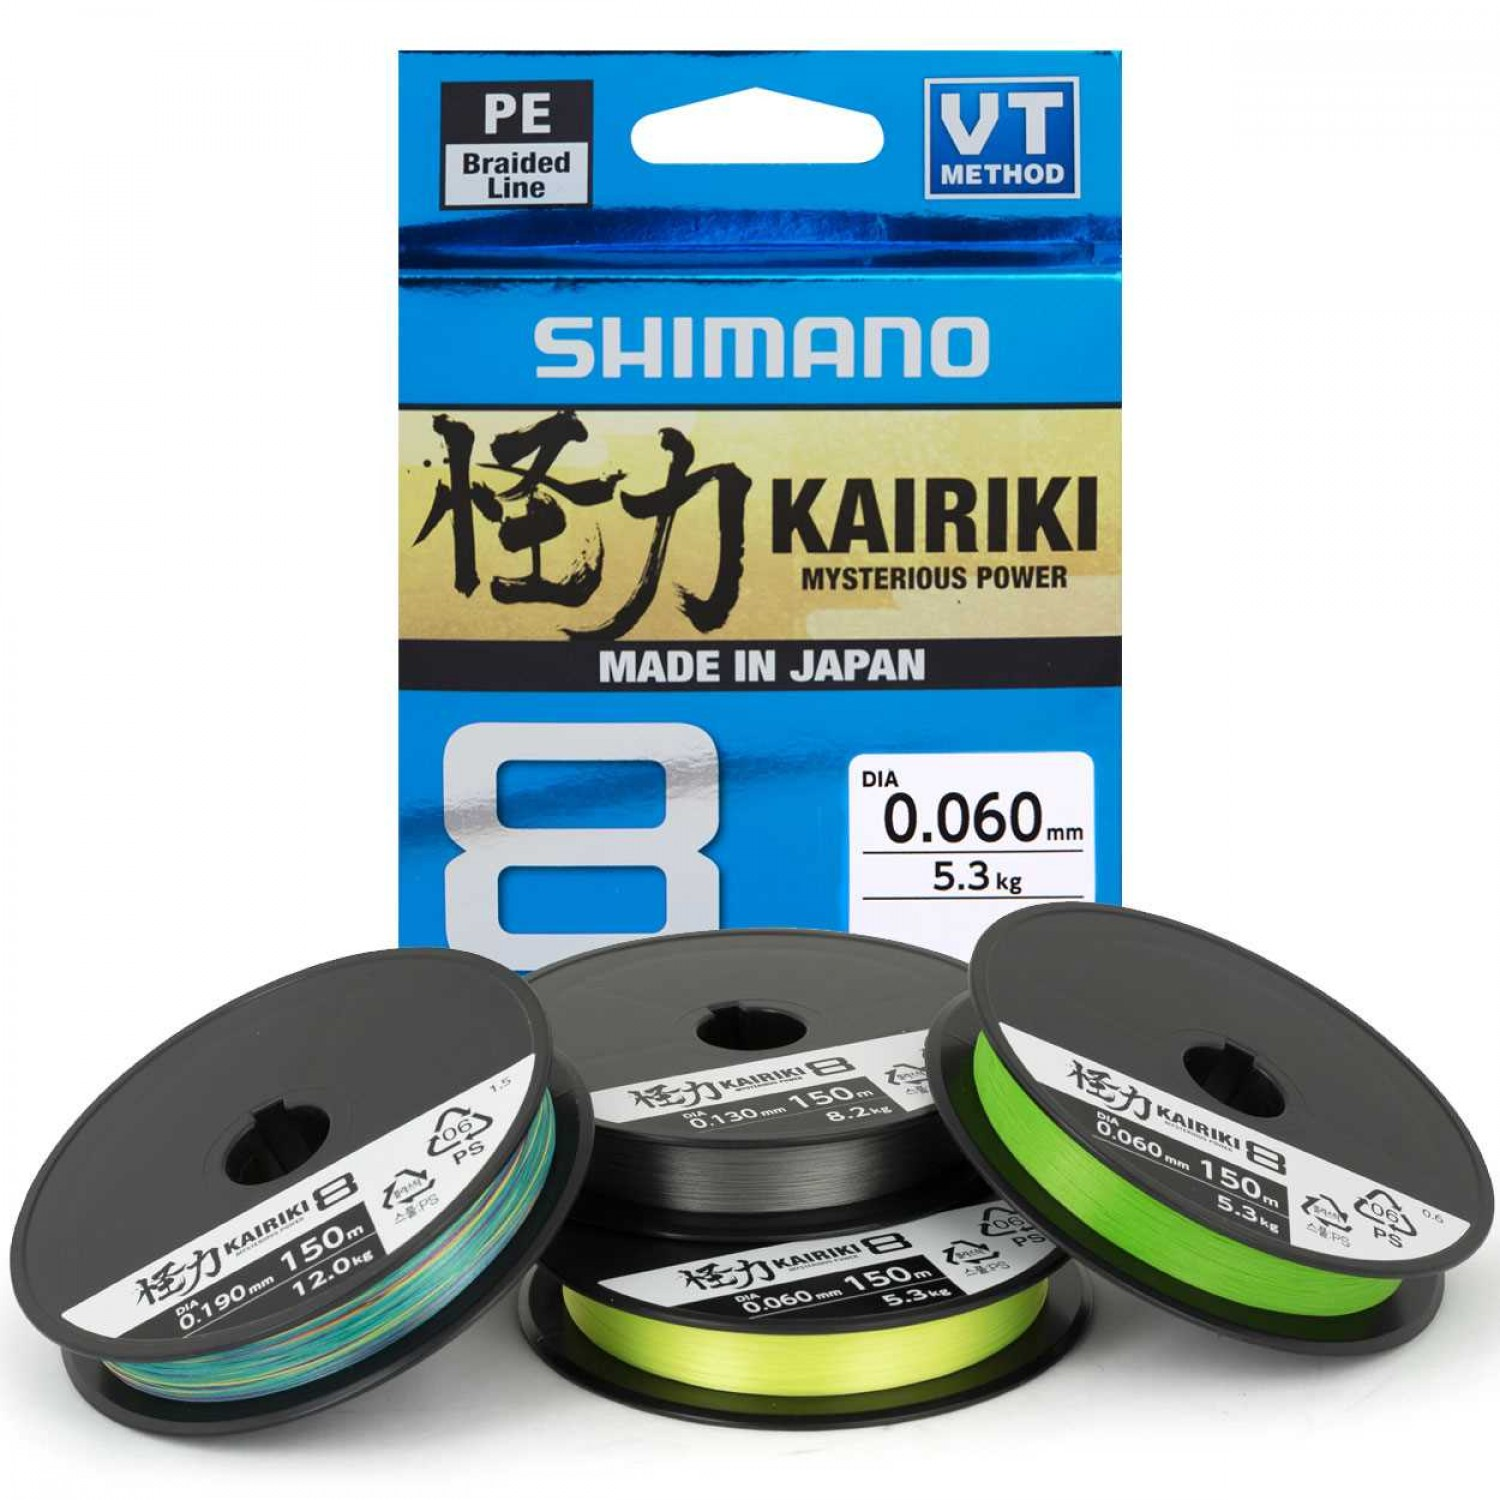 Shimano Kairiki 8 300m Multi Colour